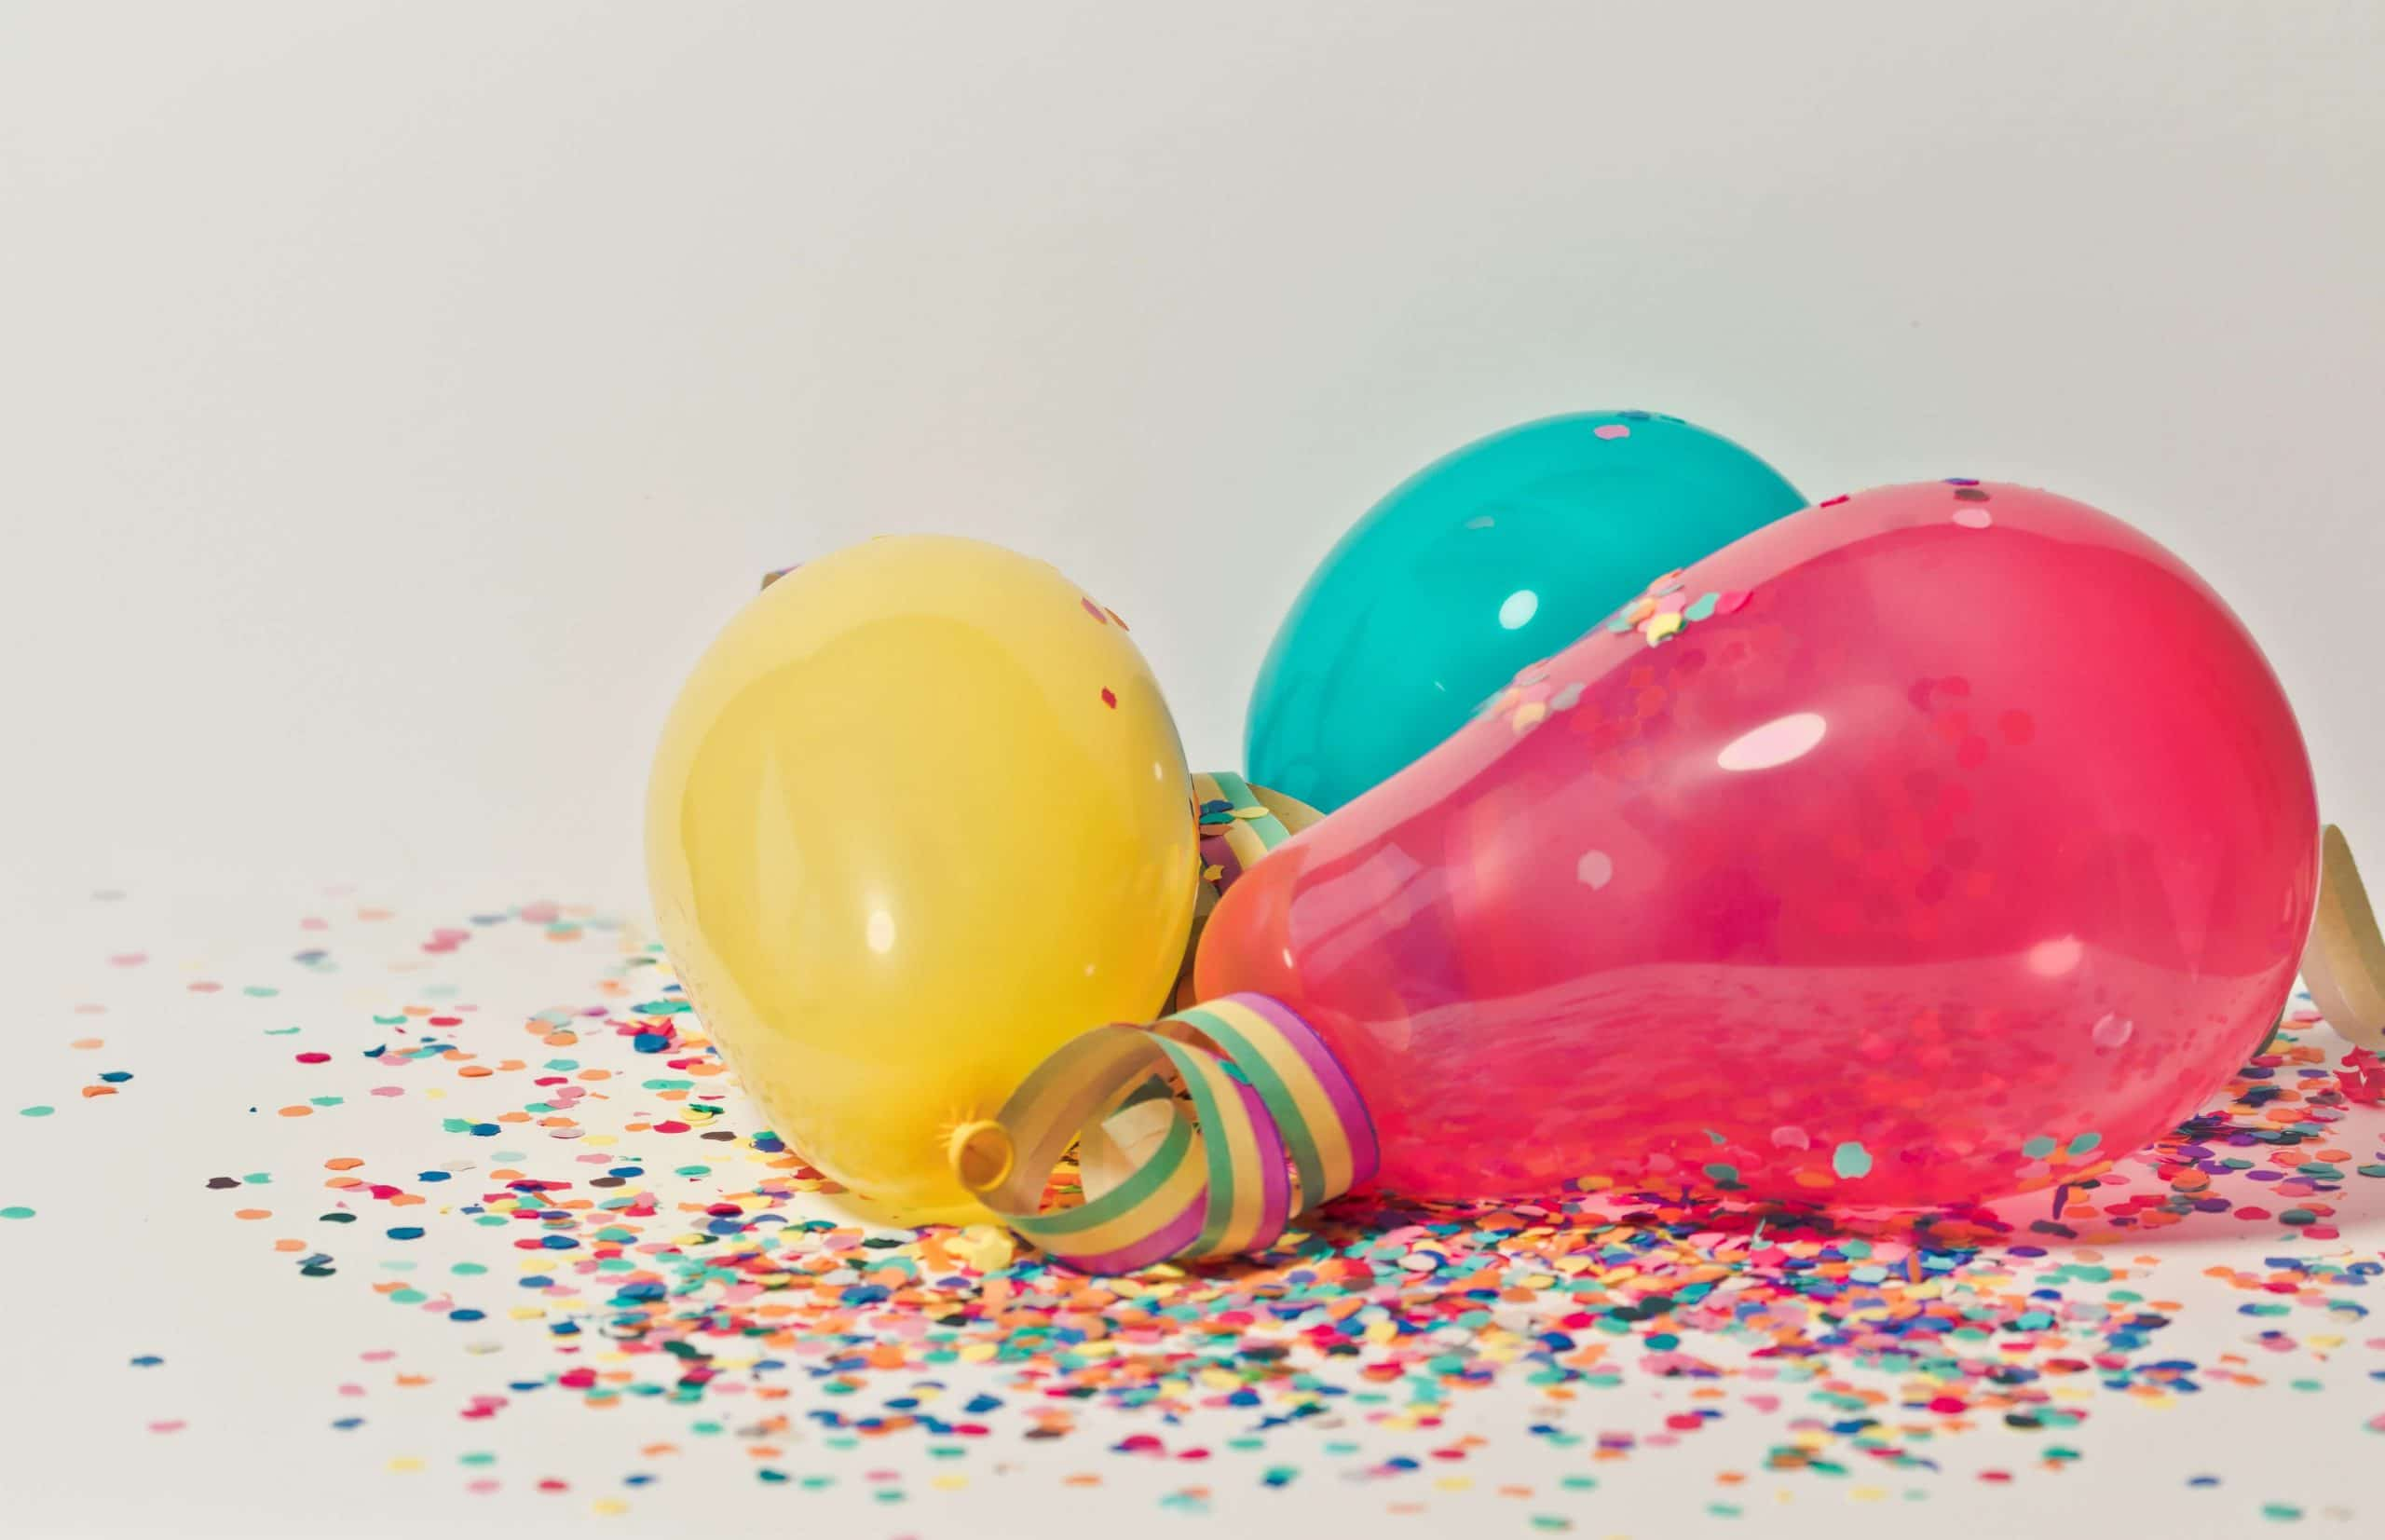 Organise a staff party that doesn't suck!